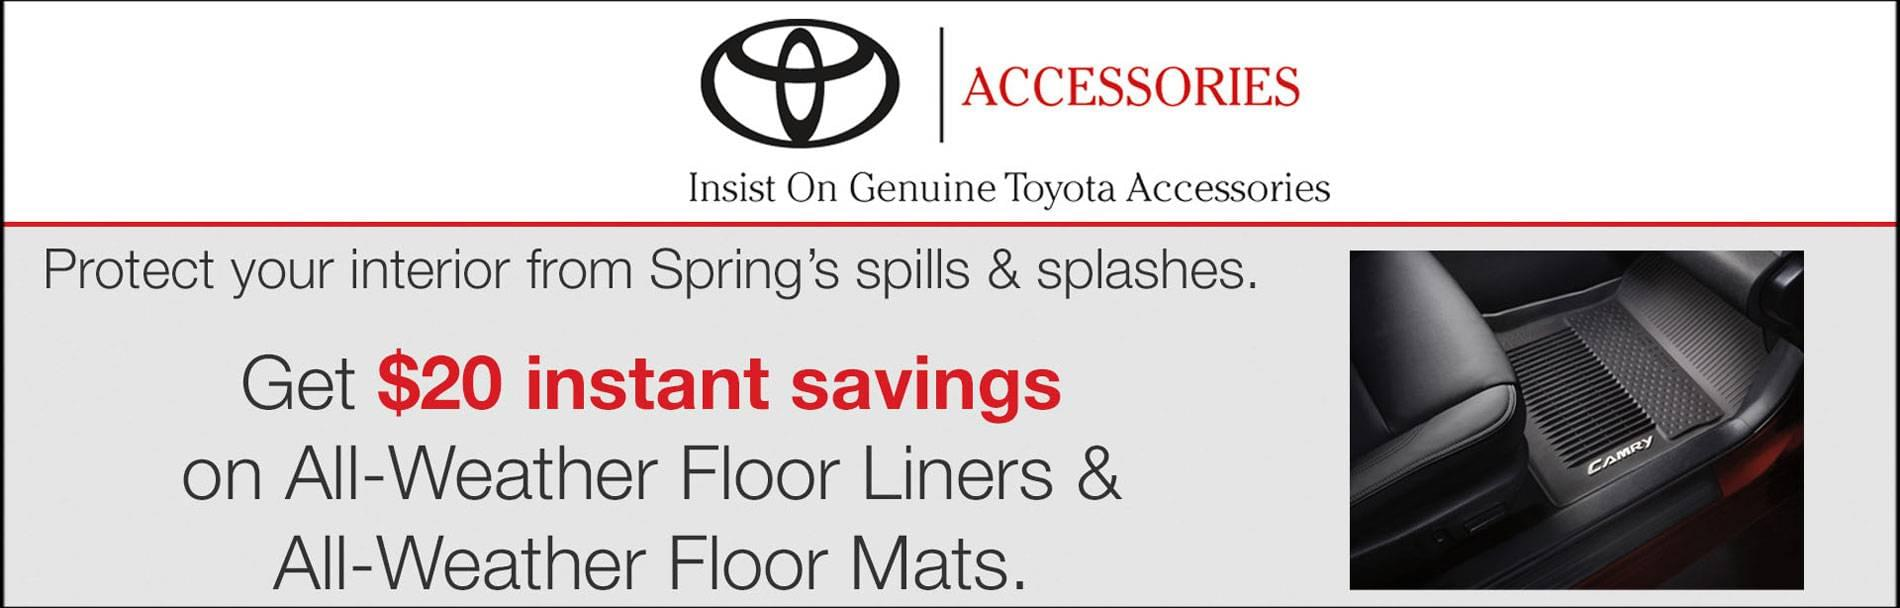 Save $20 instant savings on All Weather Floor liners and Floor Mats